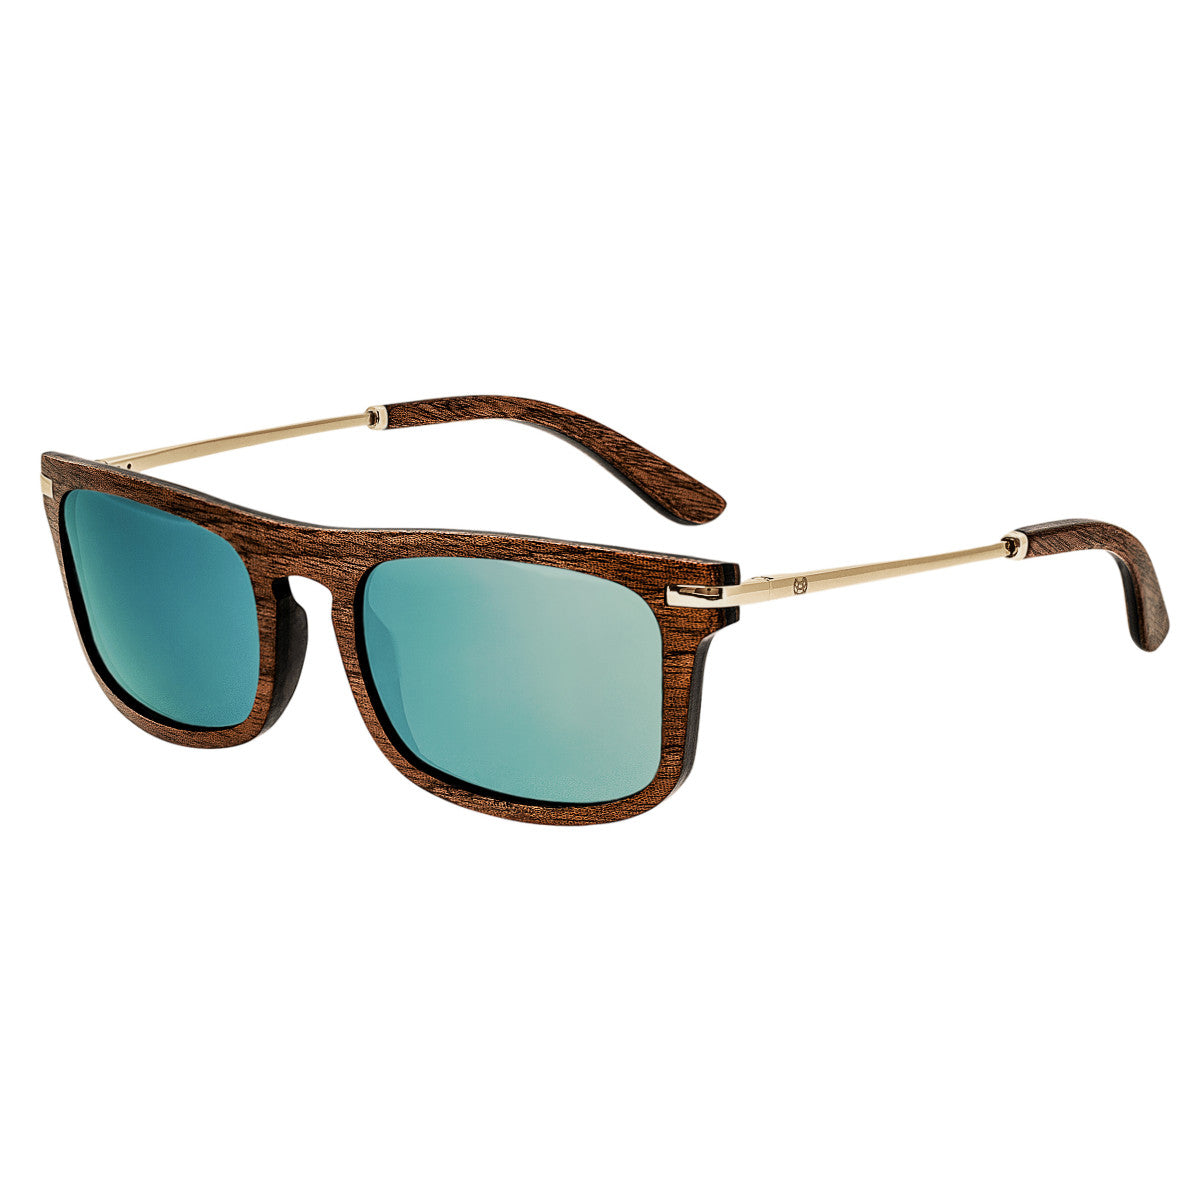 Earth Wood Queensland Polarized Sunglasses - GENT.ONE